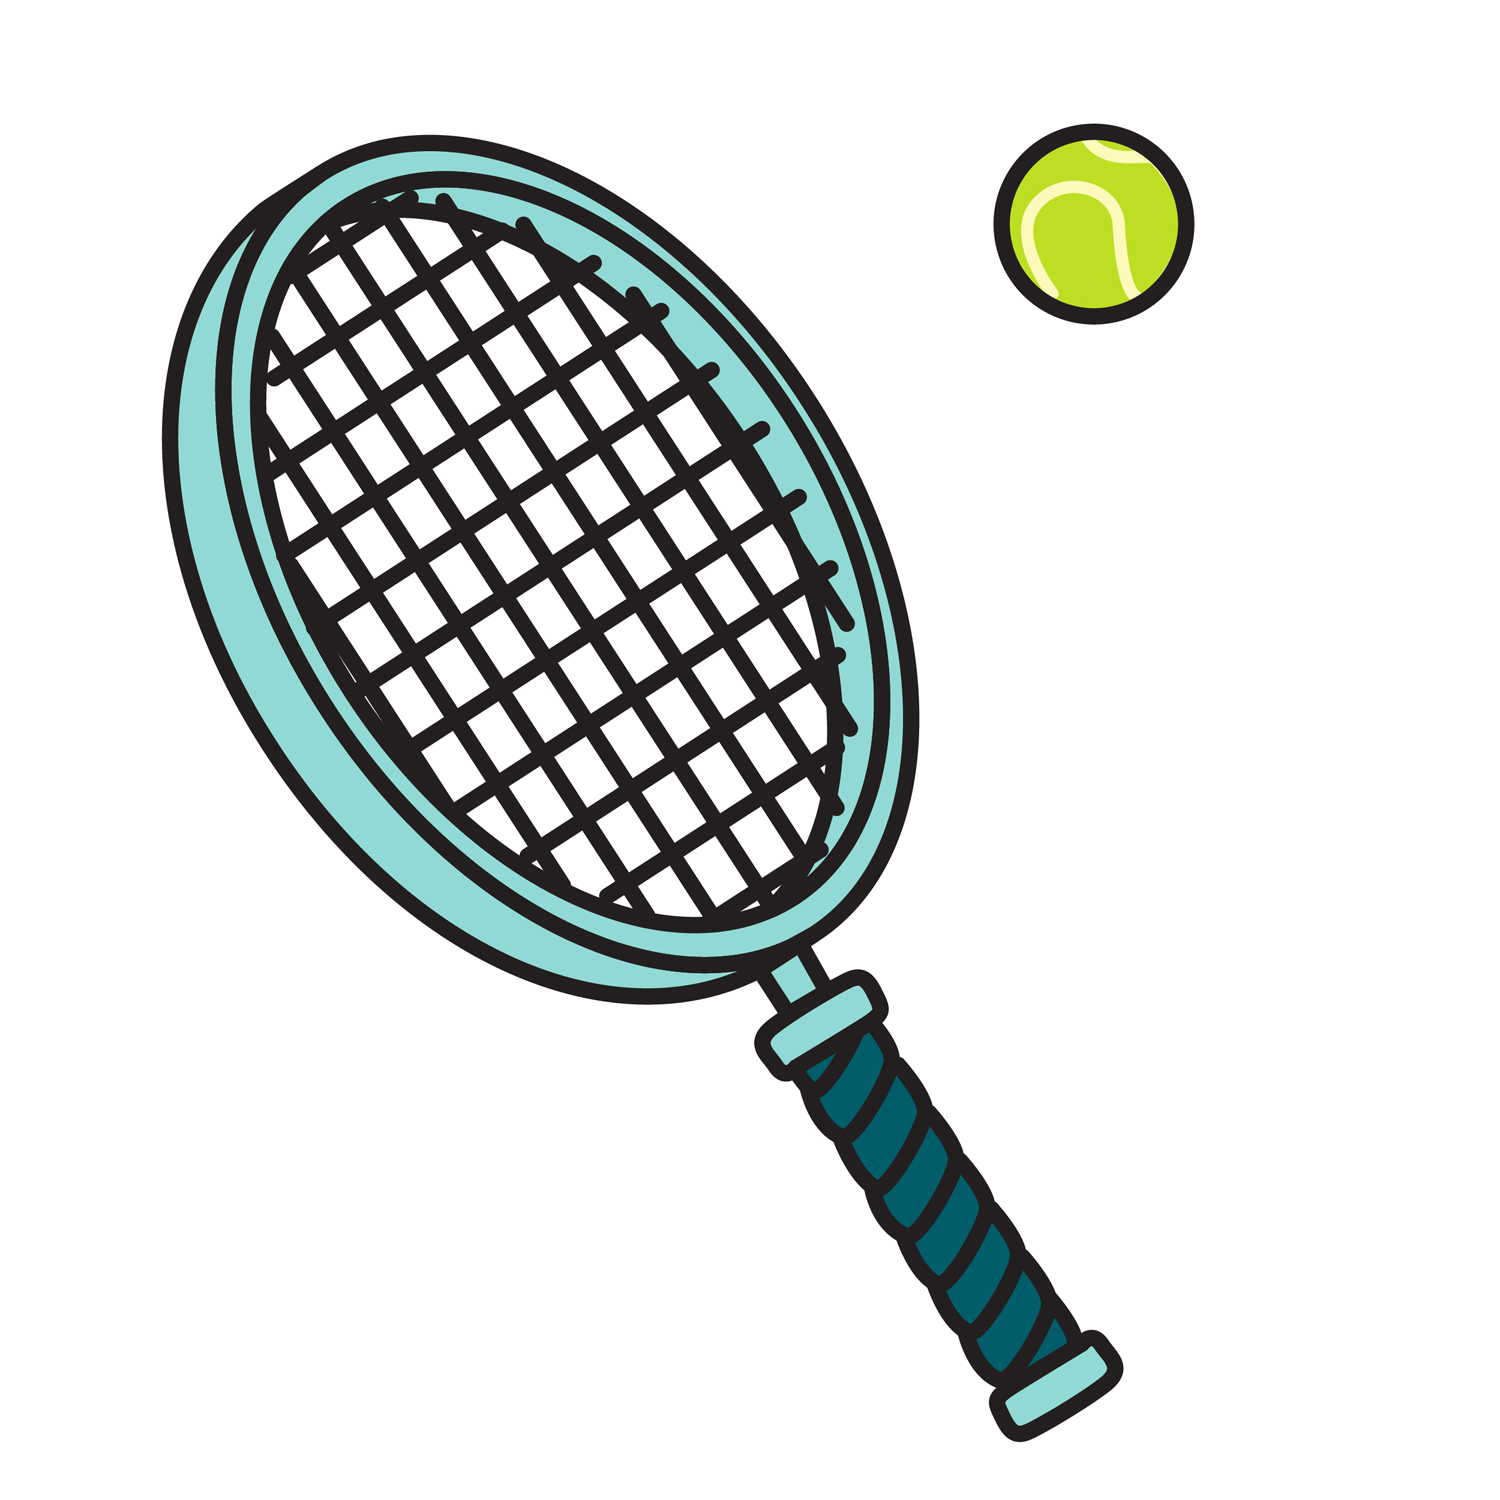 Free Tennis Racket Cliparts, Download Free Clip Art, Free.